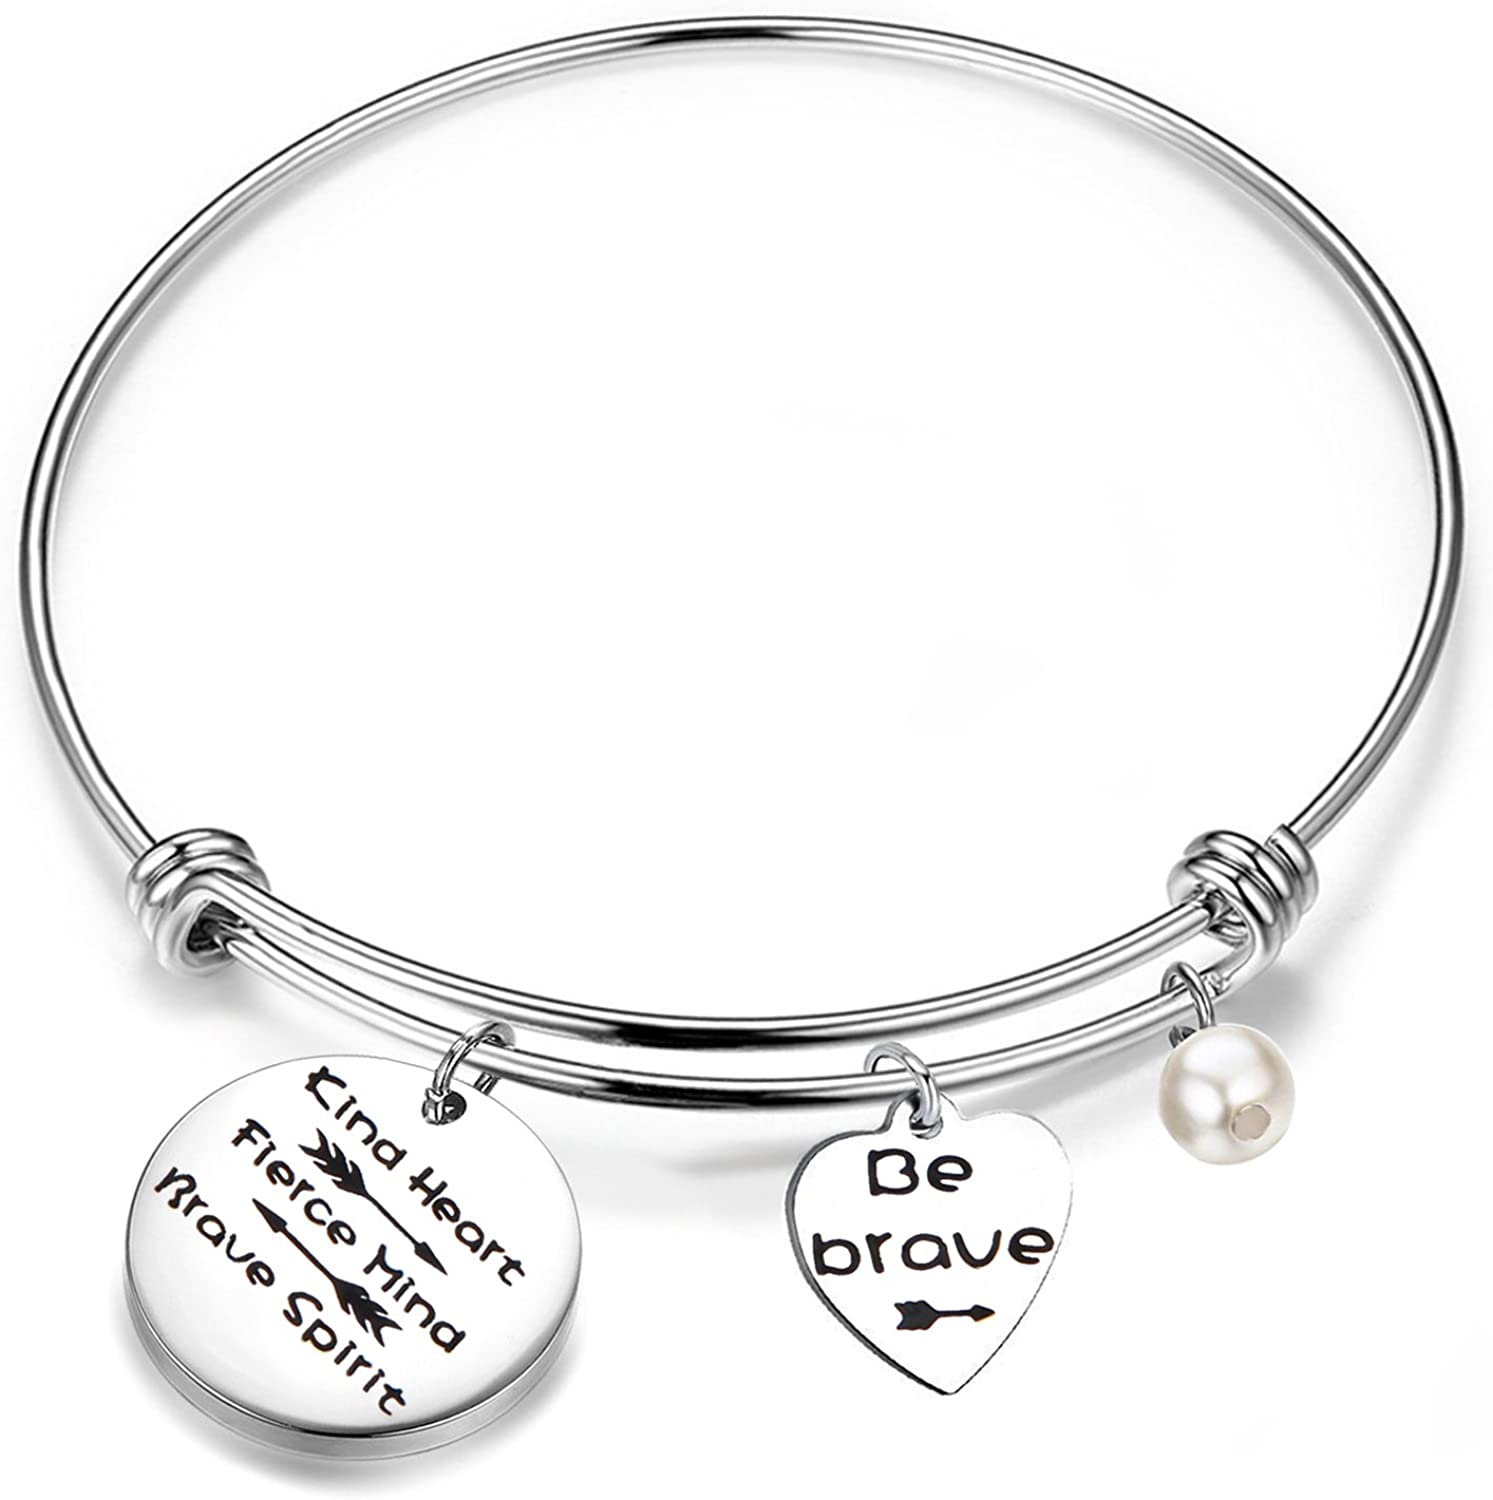 Stainless Steel Jewelry Be Fierce Engraved Expandable Wire Bangle Bracelet Medium Size